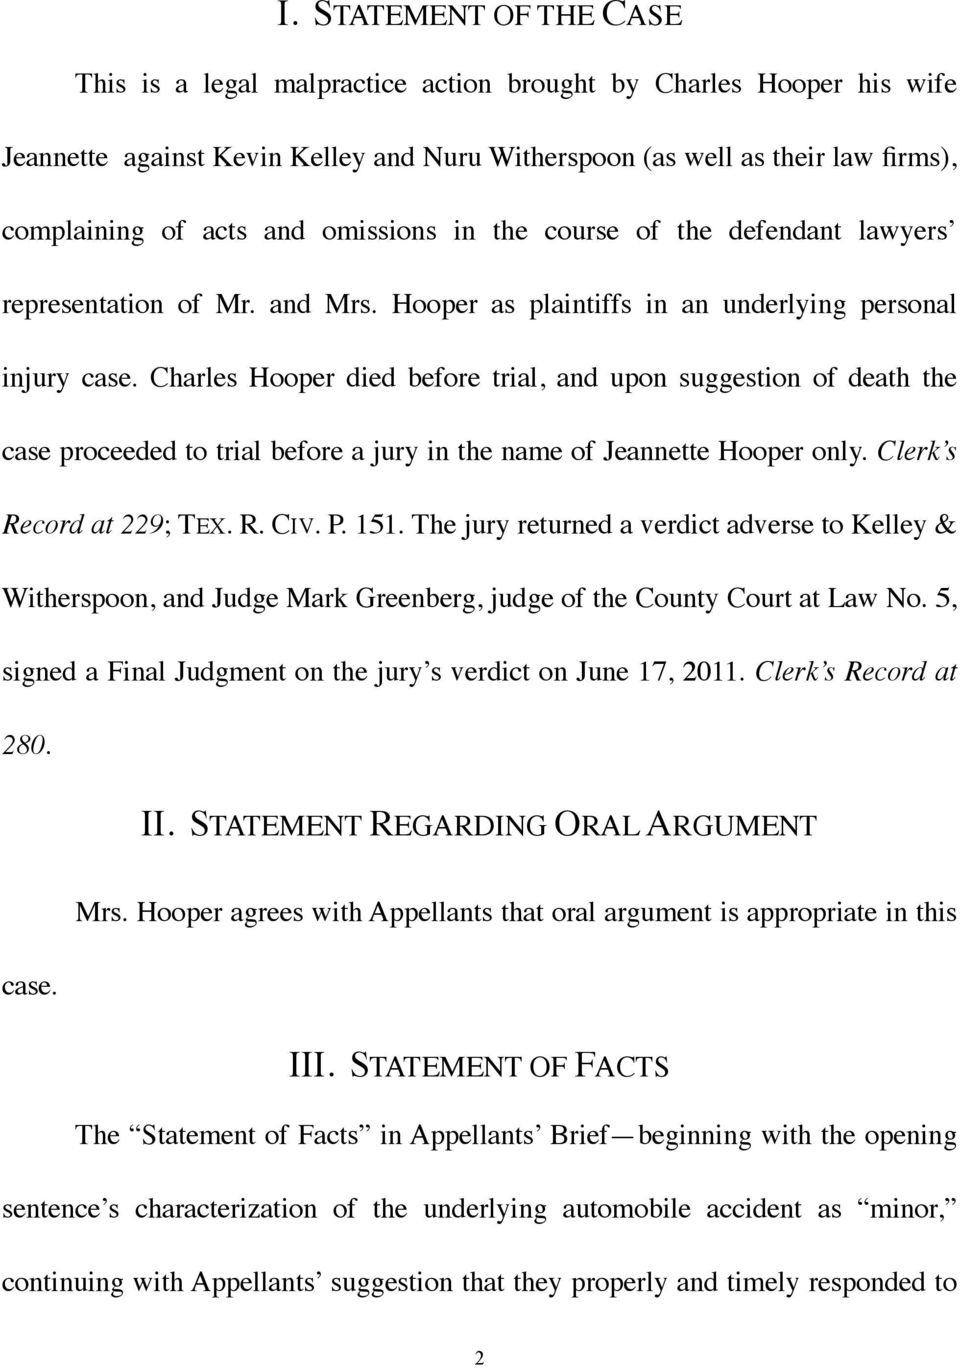 Charles Hooper died before trial, and upon suggestion of death the case proceeded to trial before a jury in the name of Jeannette Hooper only. Clerk s Record at 229; TEX. R. CIV. P. 151.